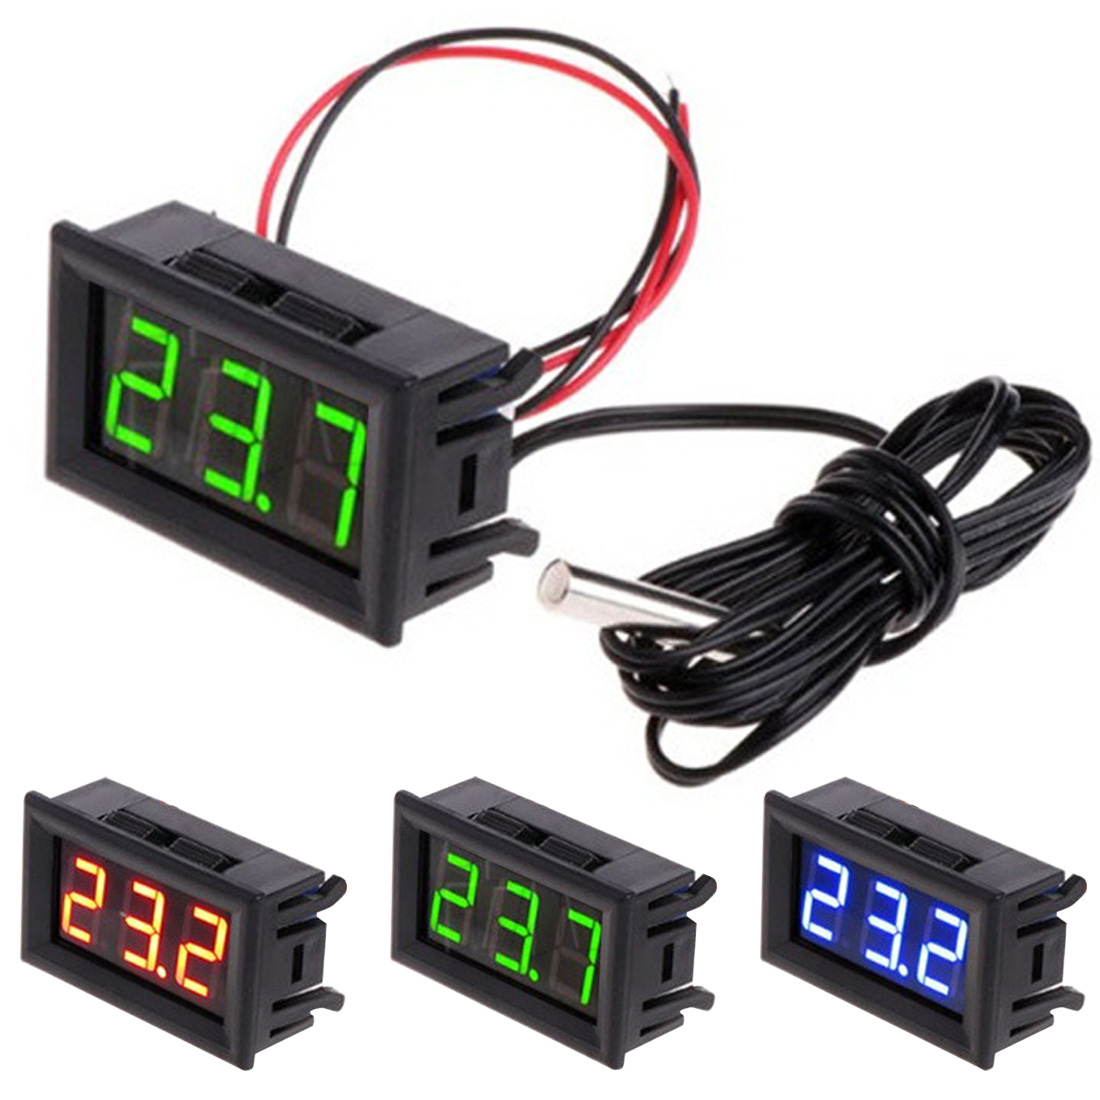 DC 5V ~ 12V Digital LED Thermometer Car Temperature Monitor Panel Meters Drop Shipping Support -<font><b>50</b></font>-<font><b>110C</b></font> Embedded image